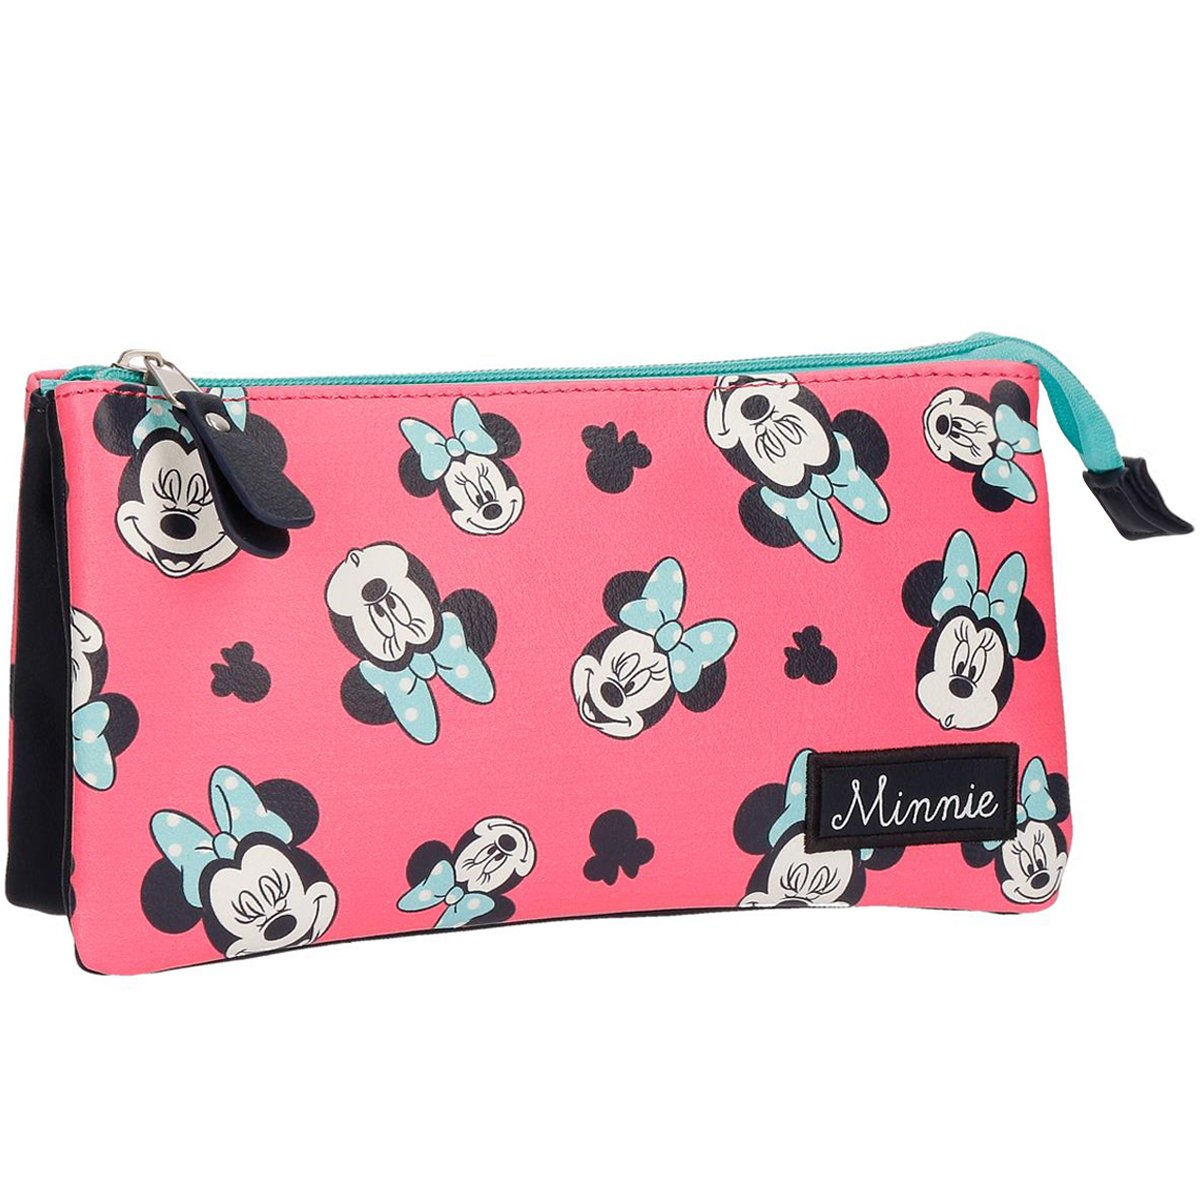 Trousse de toilette 22cm MINNIE Wink- Rose